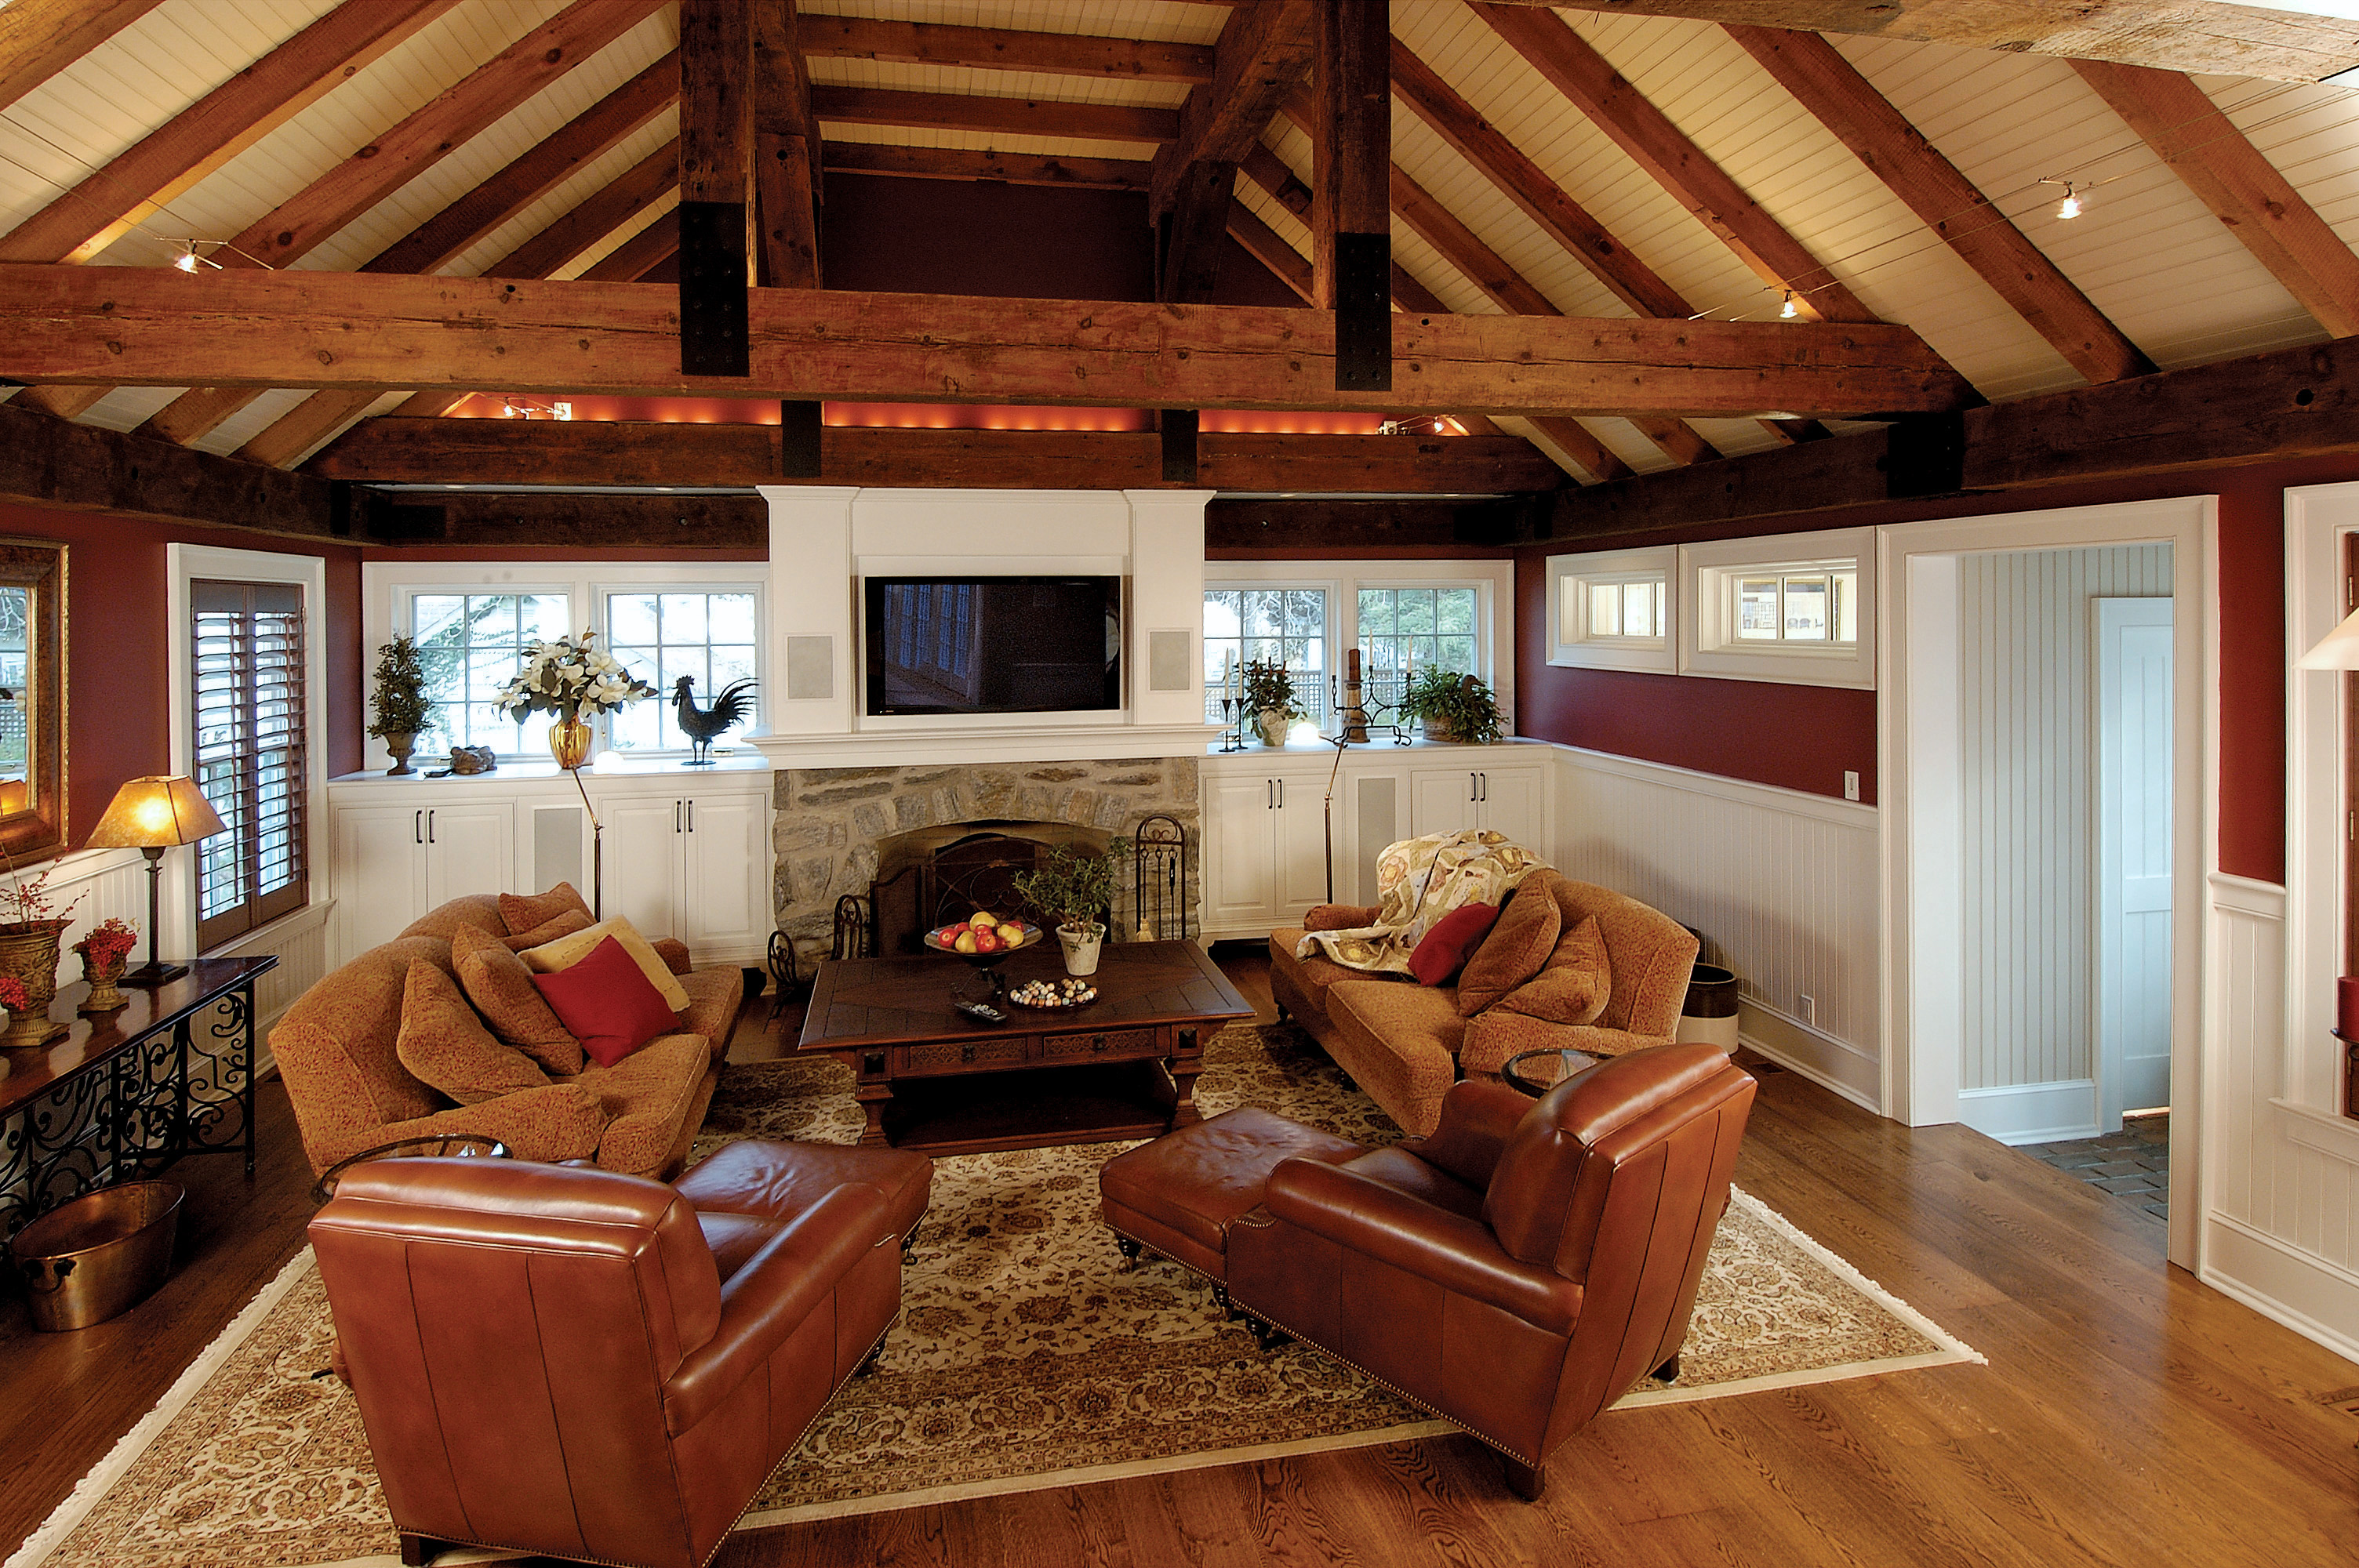 Family room addition with rustic beams and vaulted ceiling for Room addition ideas